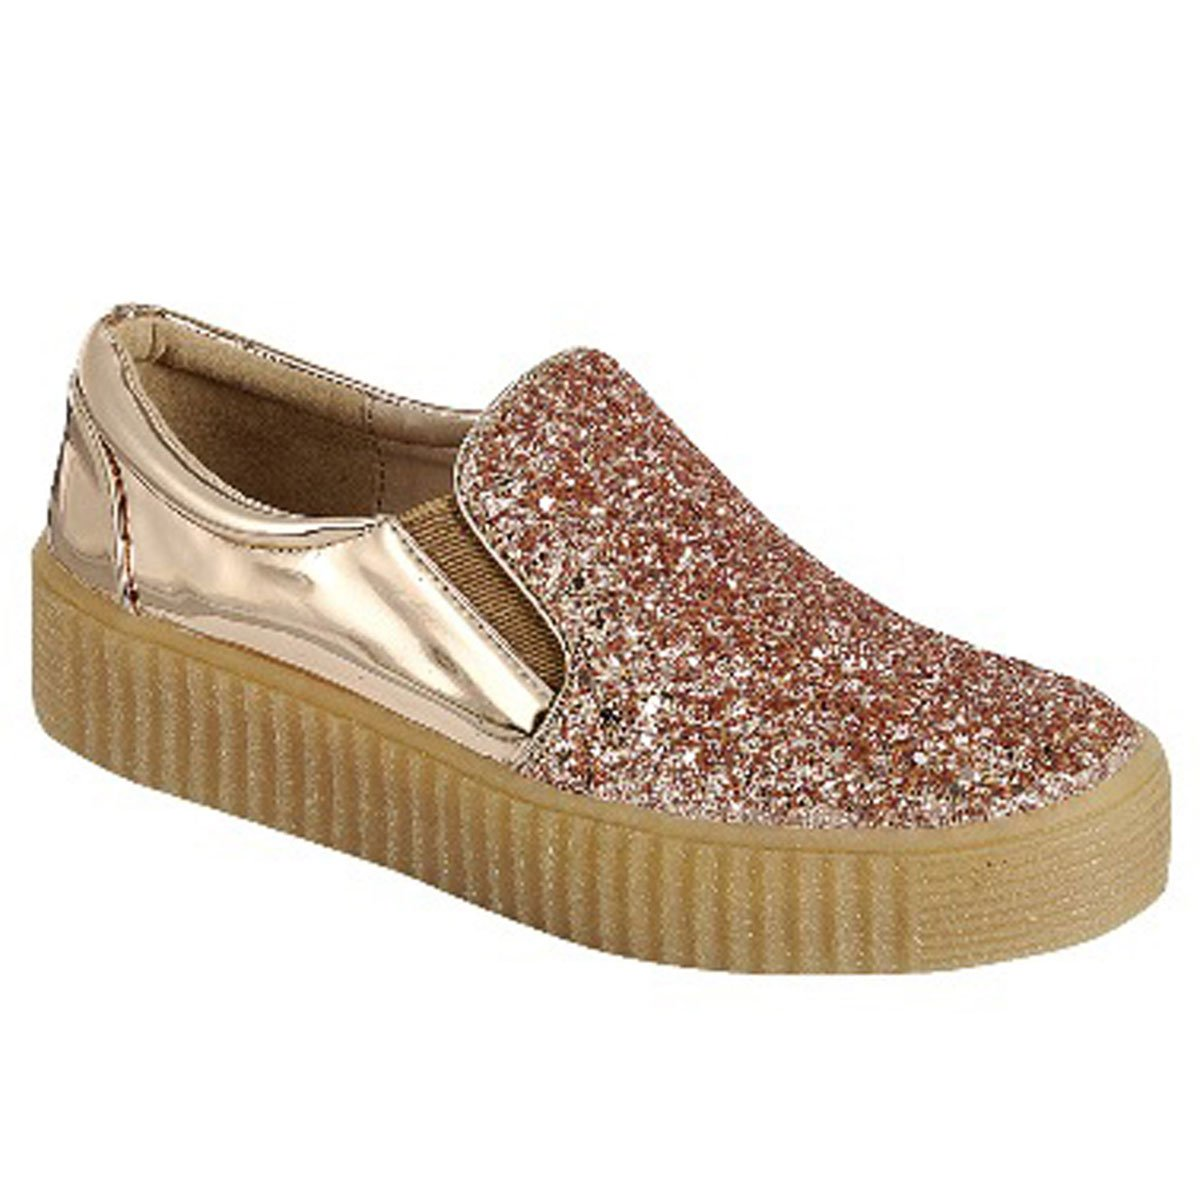 Best Clearance Sale Metallic Rose Gold Bling Sport Sneaker Top Crepe Rubber Sole Round Toe Anti Skid Kung Fu Flat Modern Casual Flashy Summer Sketcher Bootie Shoe for Women Teen Girl (Size 7.5, RGold)